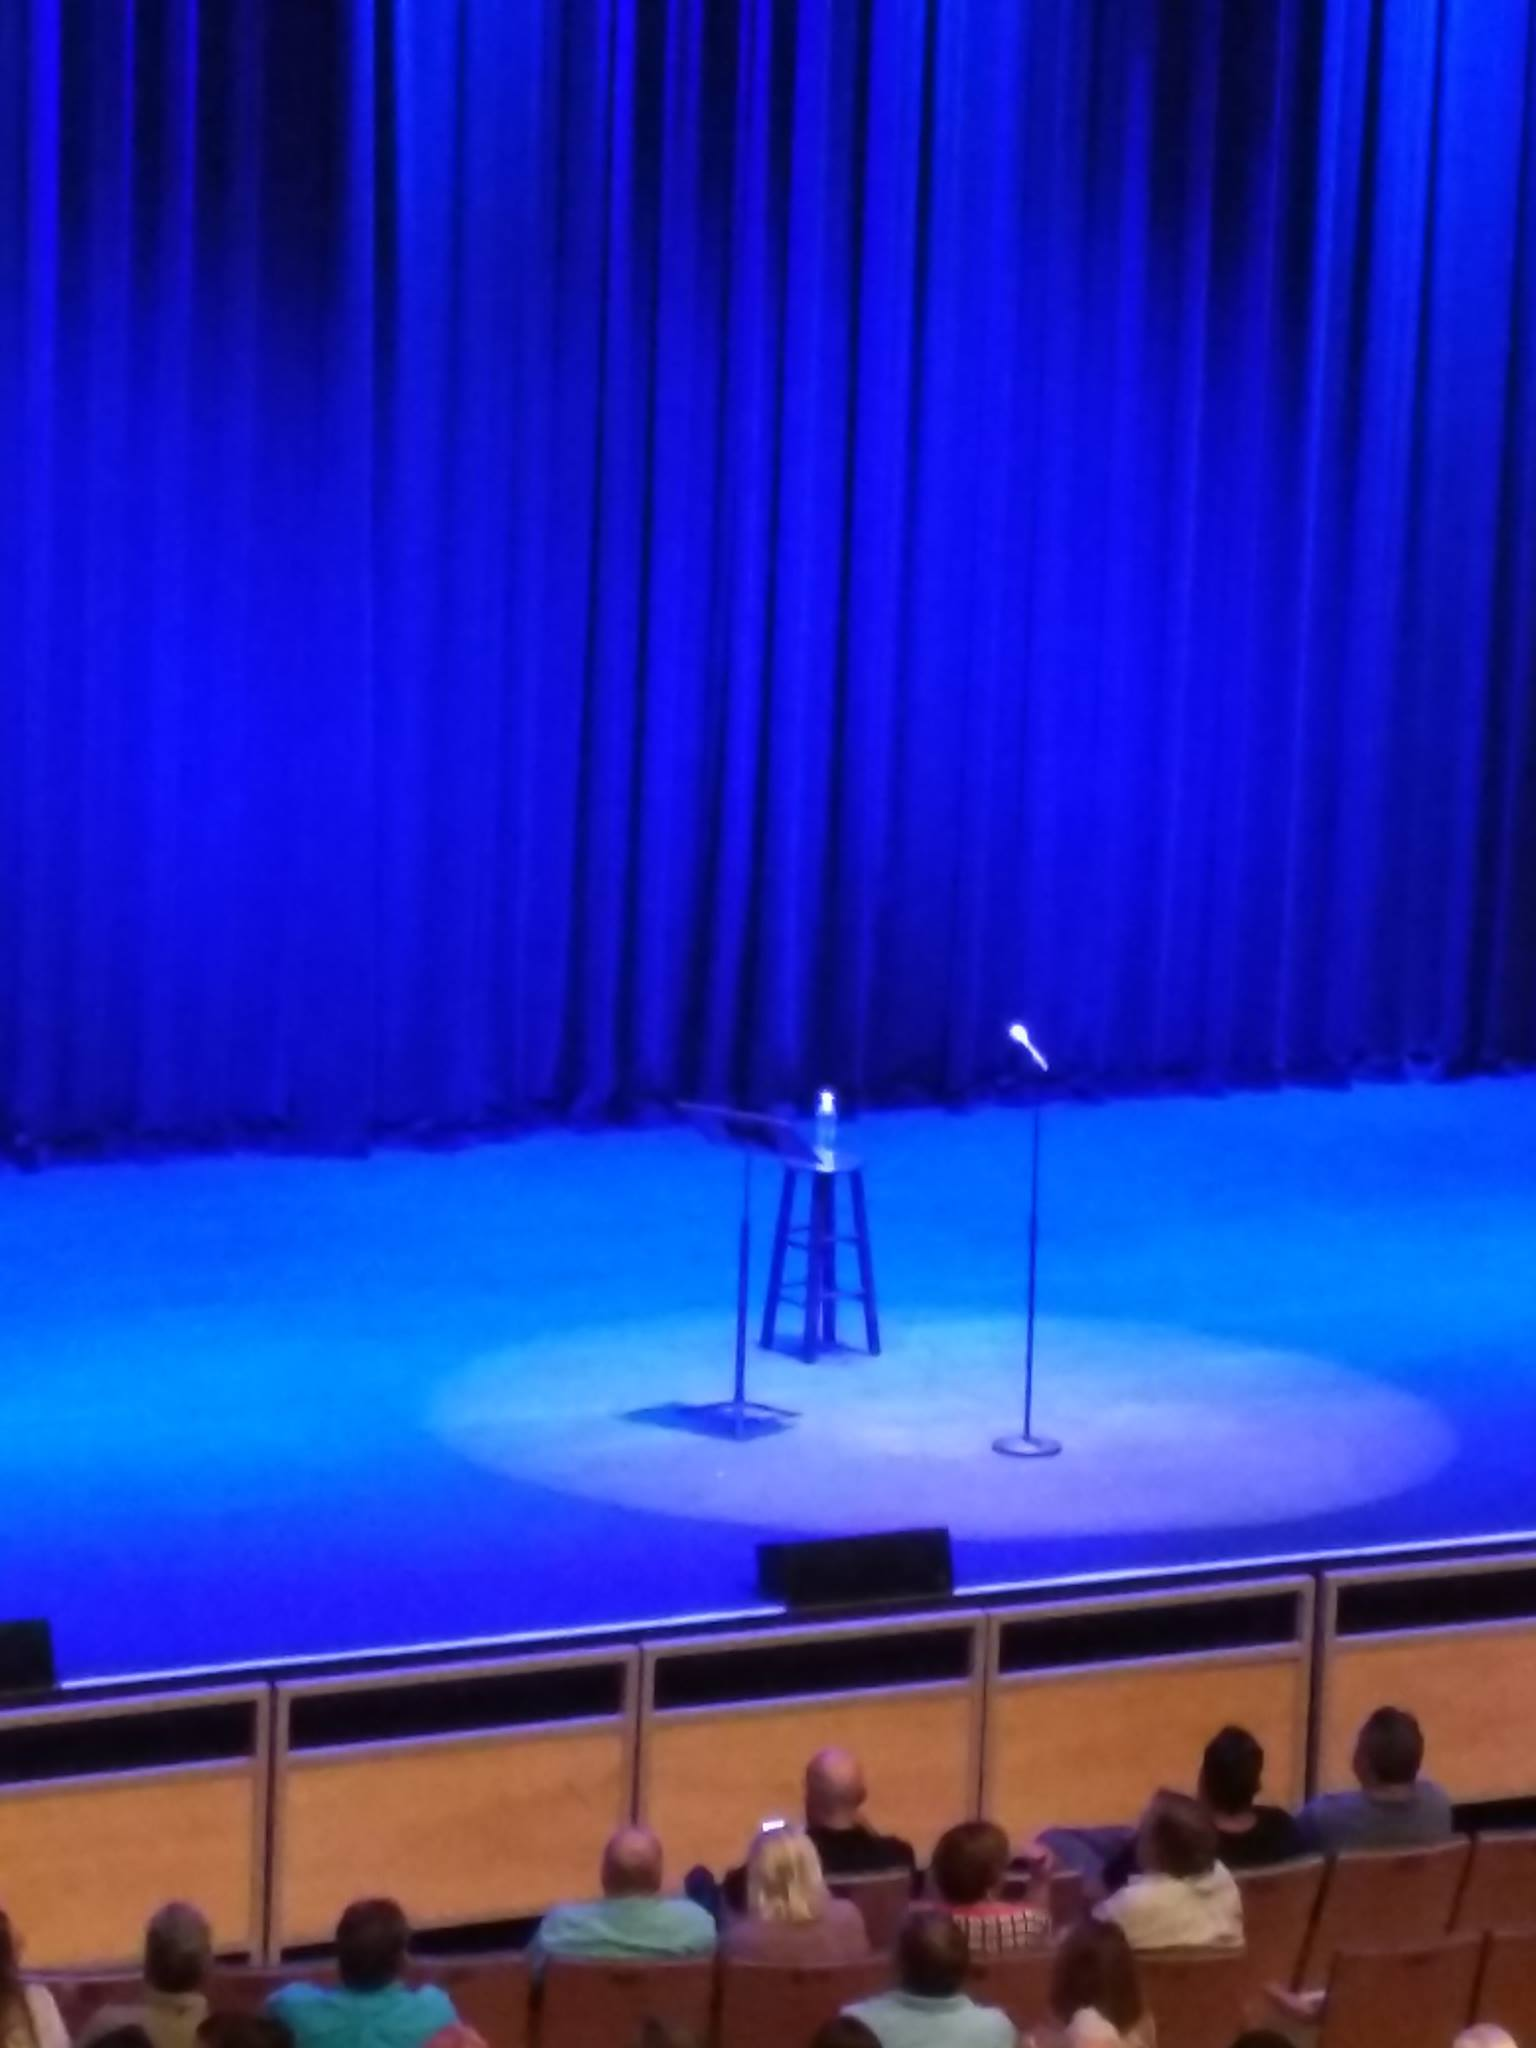 Waiting to see Bill Maher...